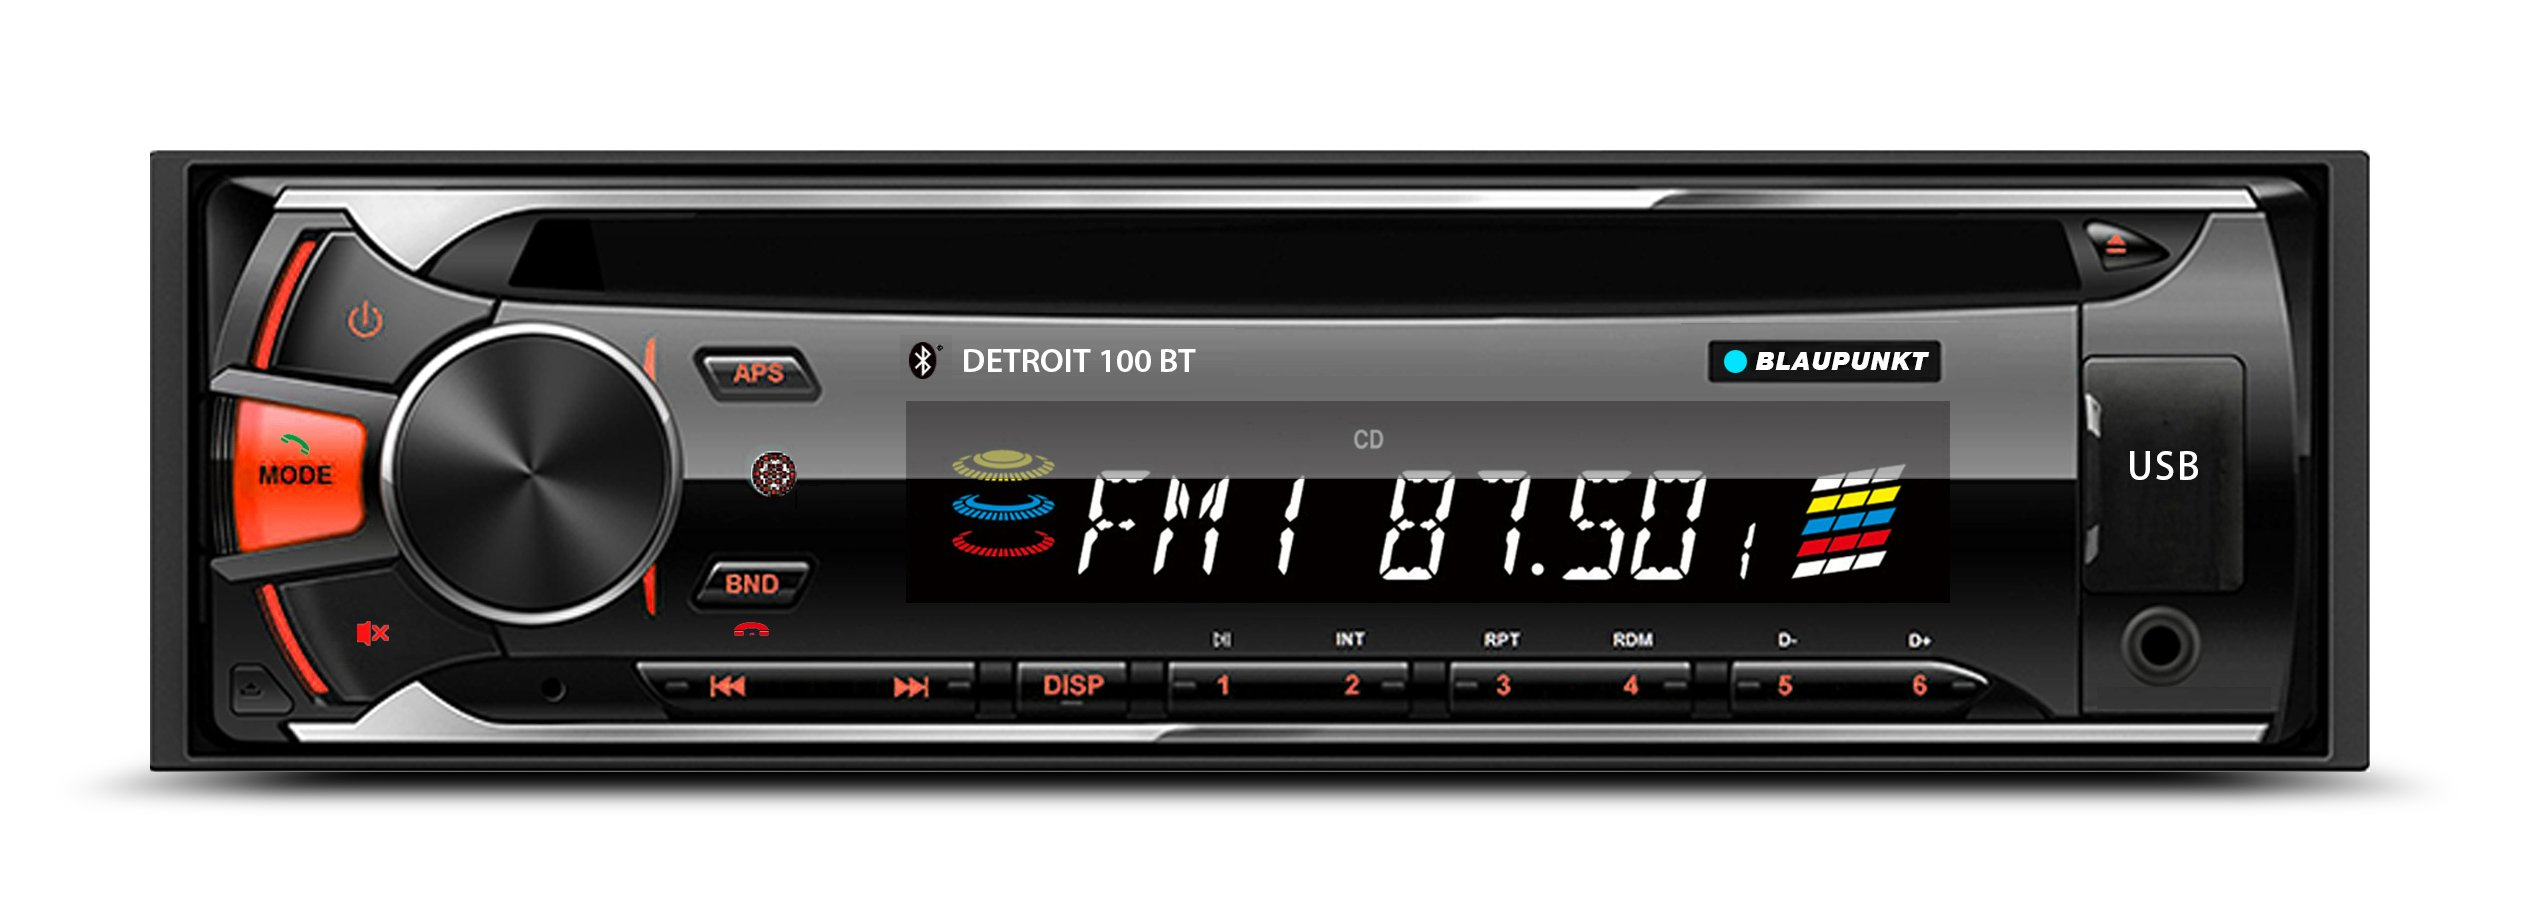 Blaupunkt DETROIT 100 BT CD, AM/FM-MPX2 Bluetooth Car Stereo Receiver with Remote Control and Removable Face Plate